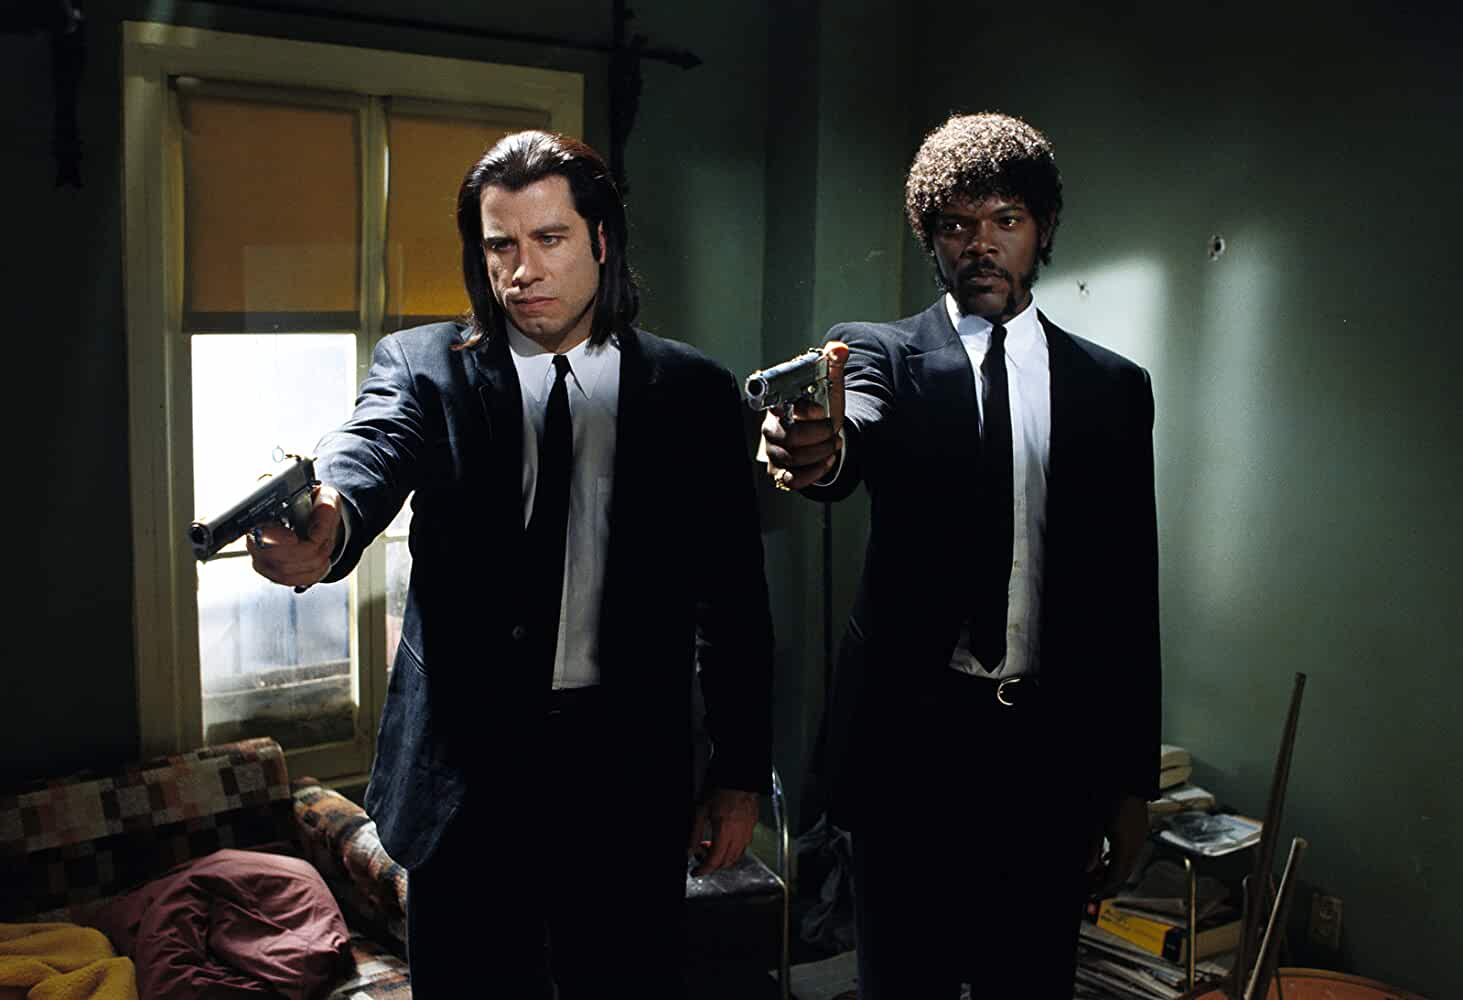 Samuel L Jackson and John Travolta in Pulp Fiction 1994